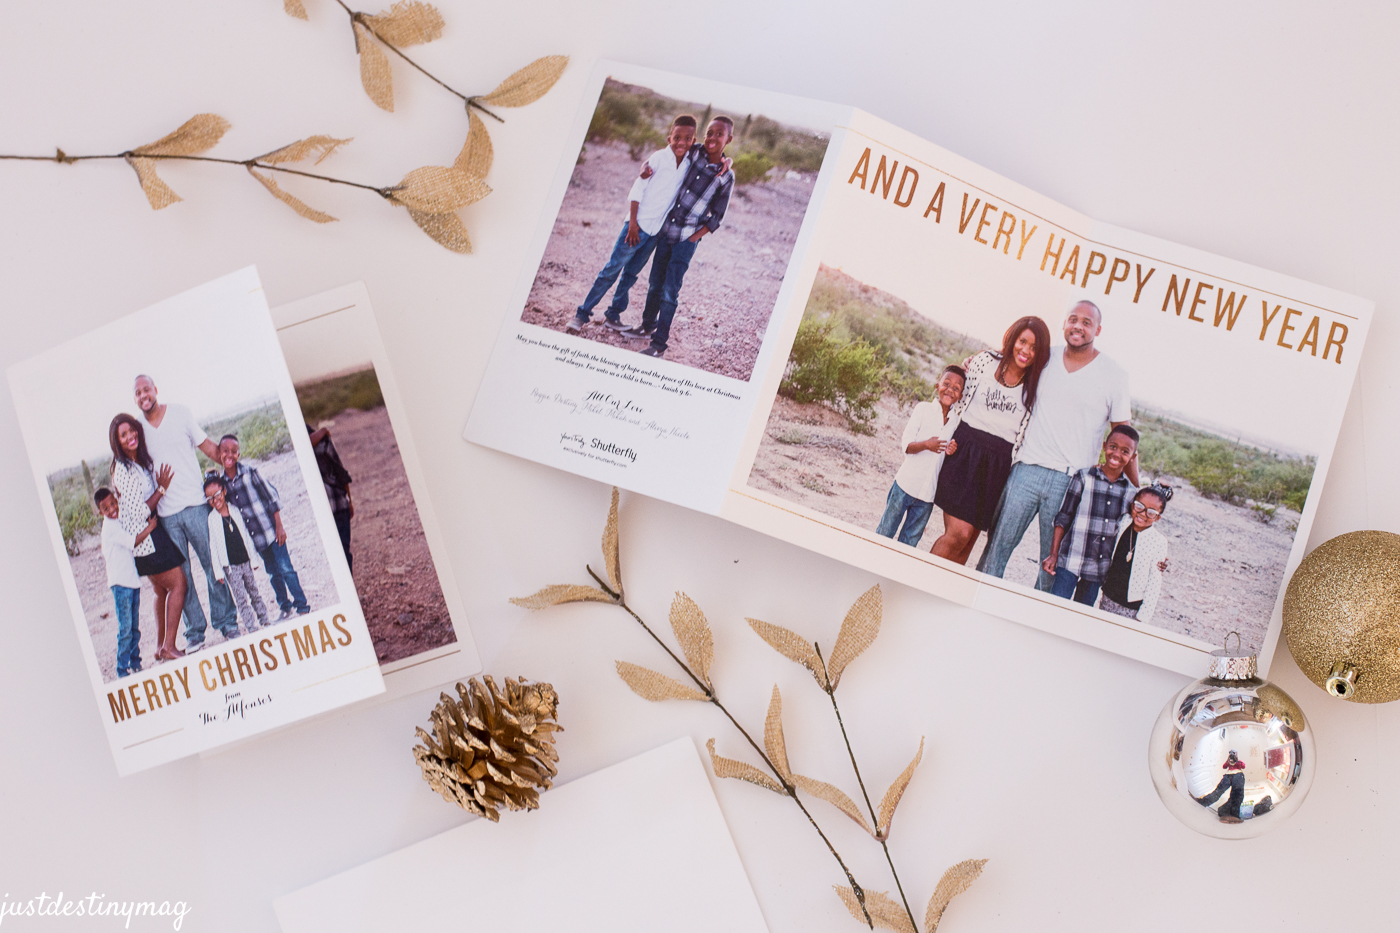 Christmas Cards By Shutterfly | Just Destiny